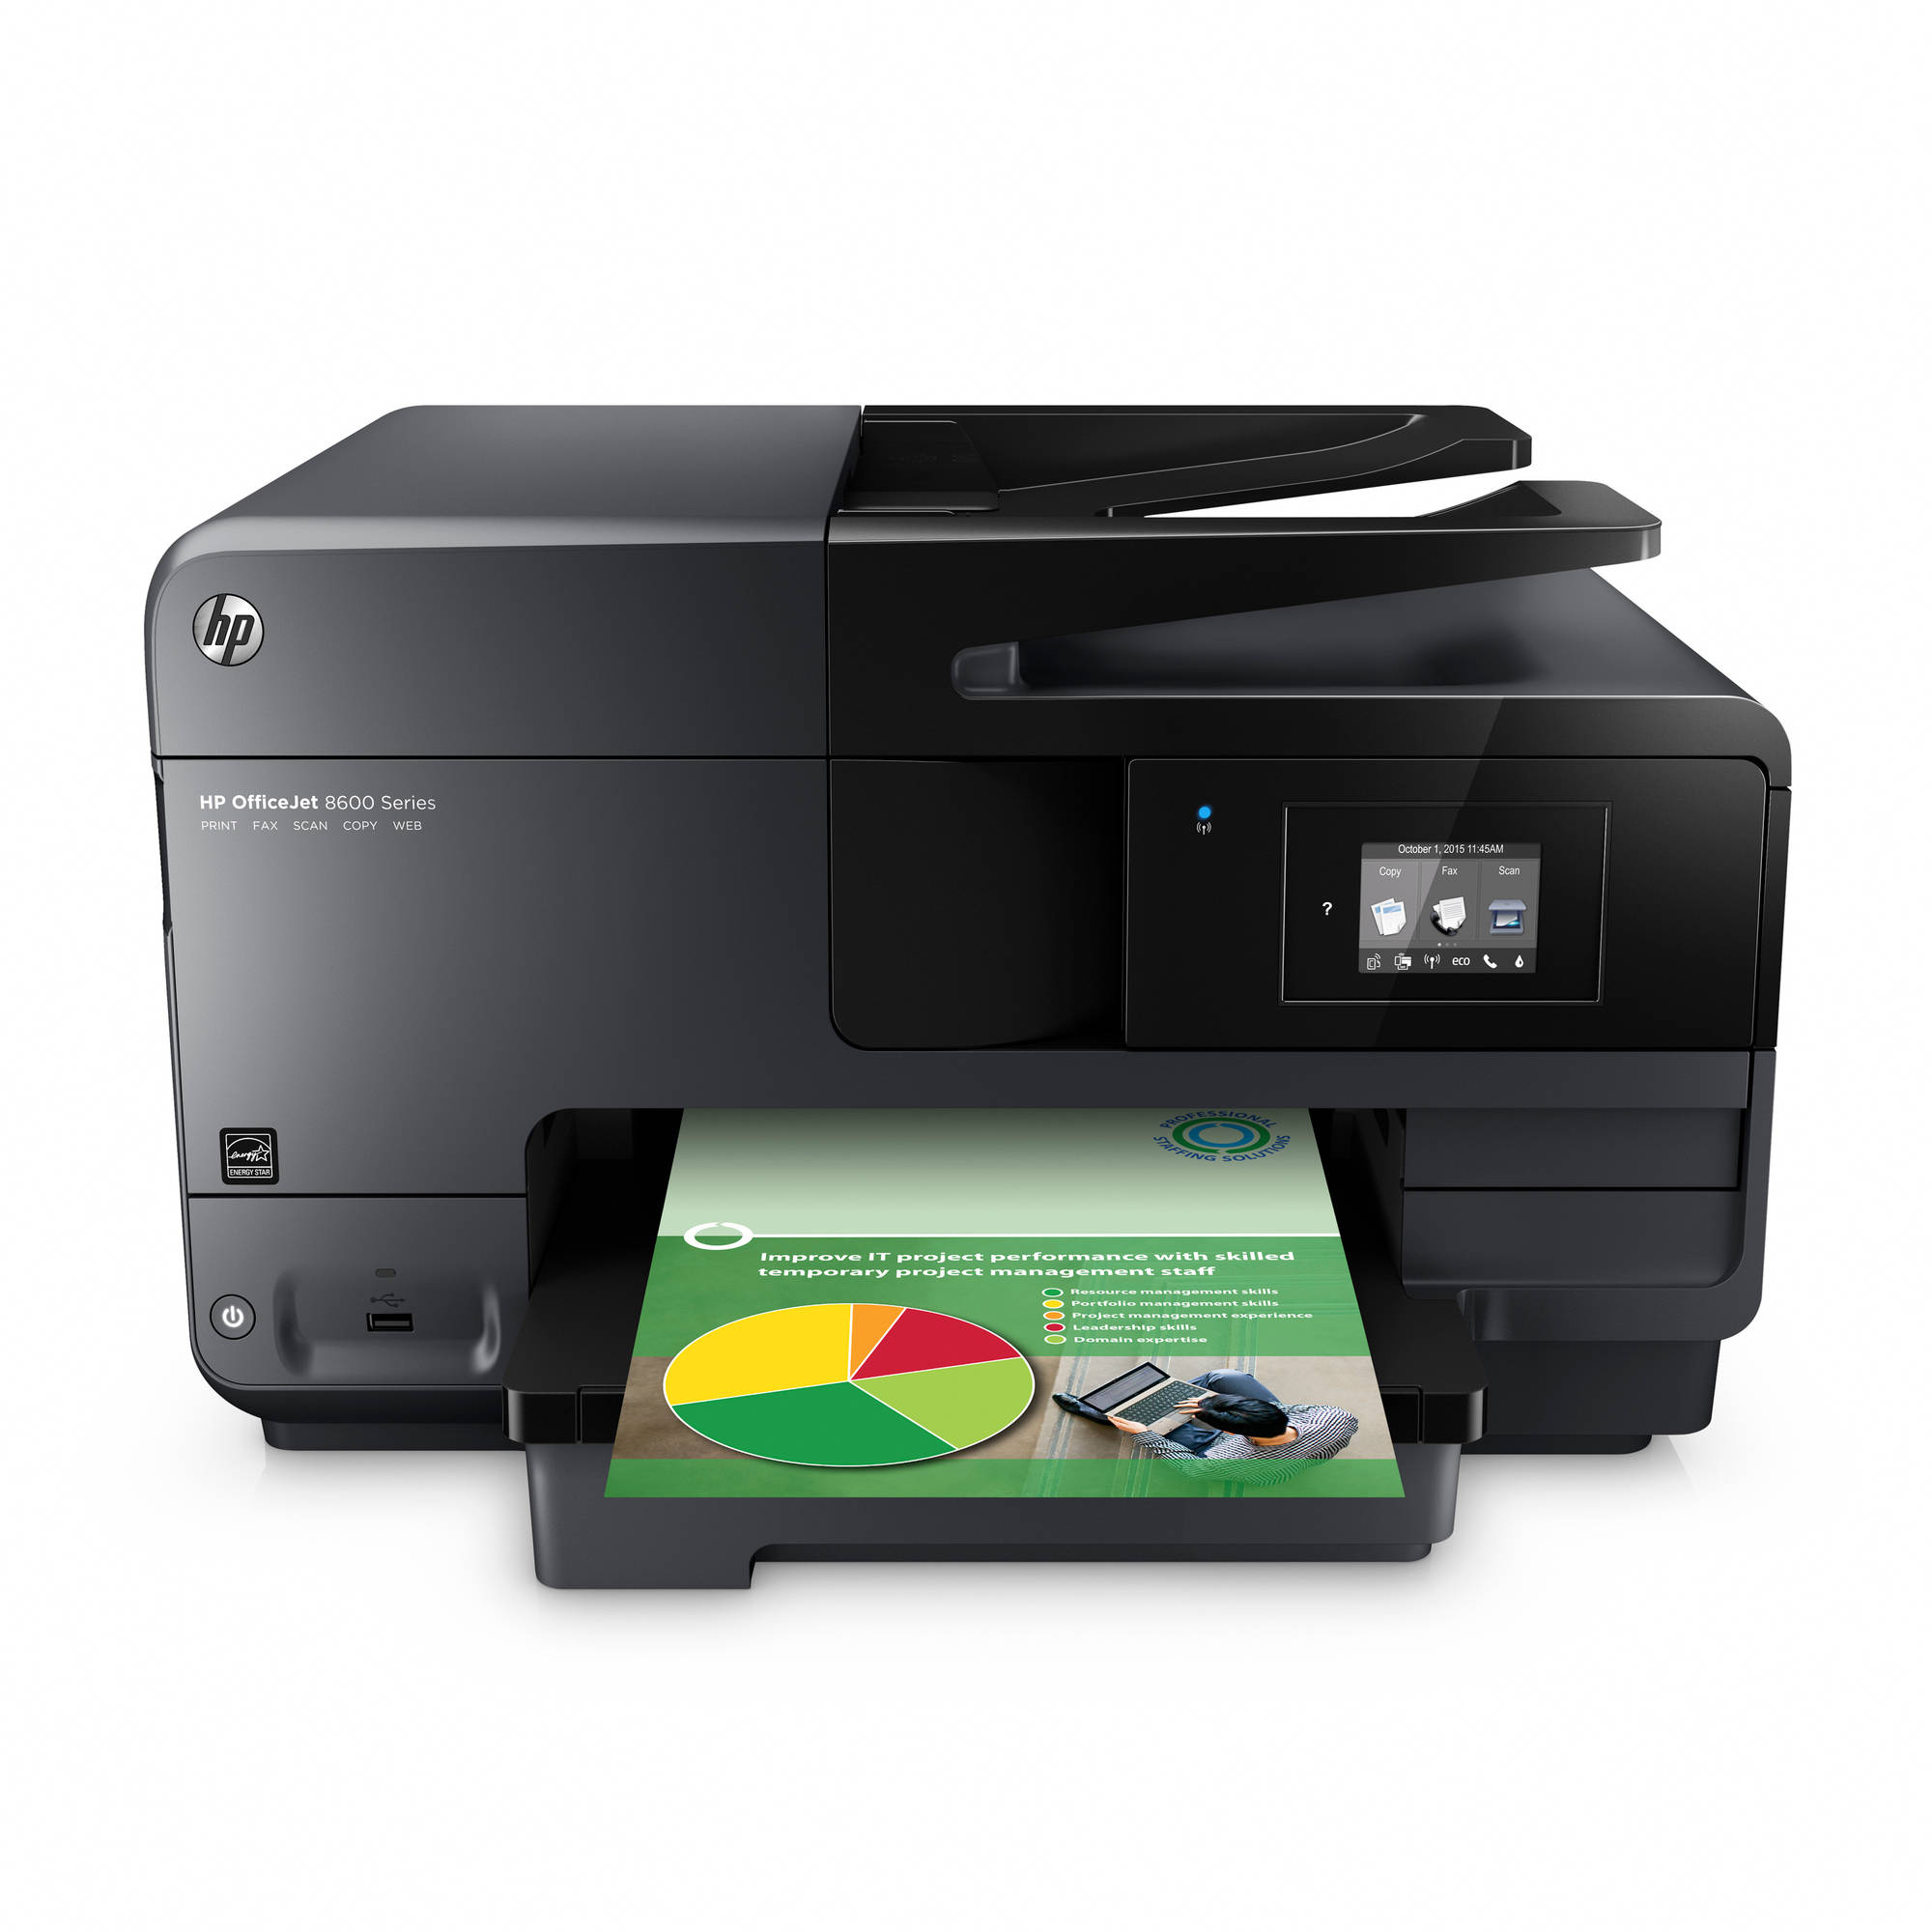 HP OfficeJet 8600 Inkjet e-All-in-One Multifunction Printer/Copier/Scanner/Fax Machine